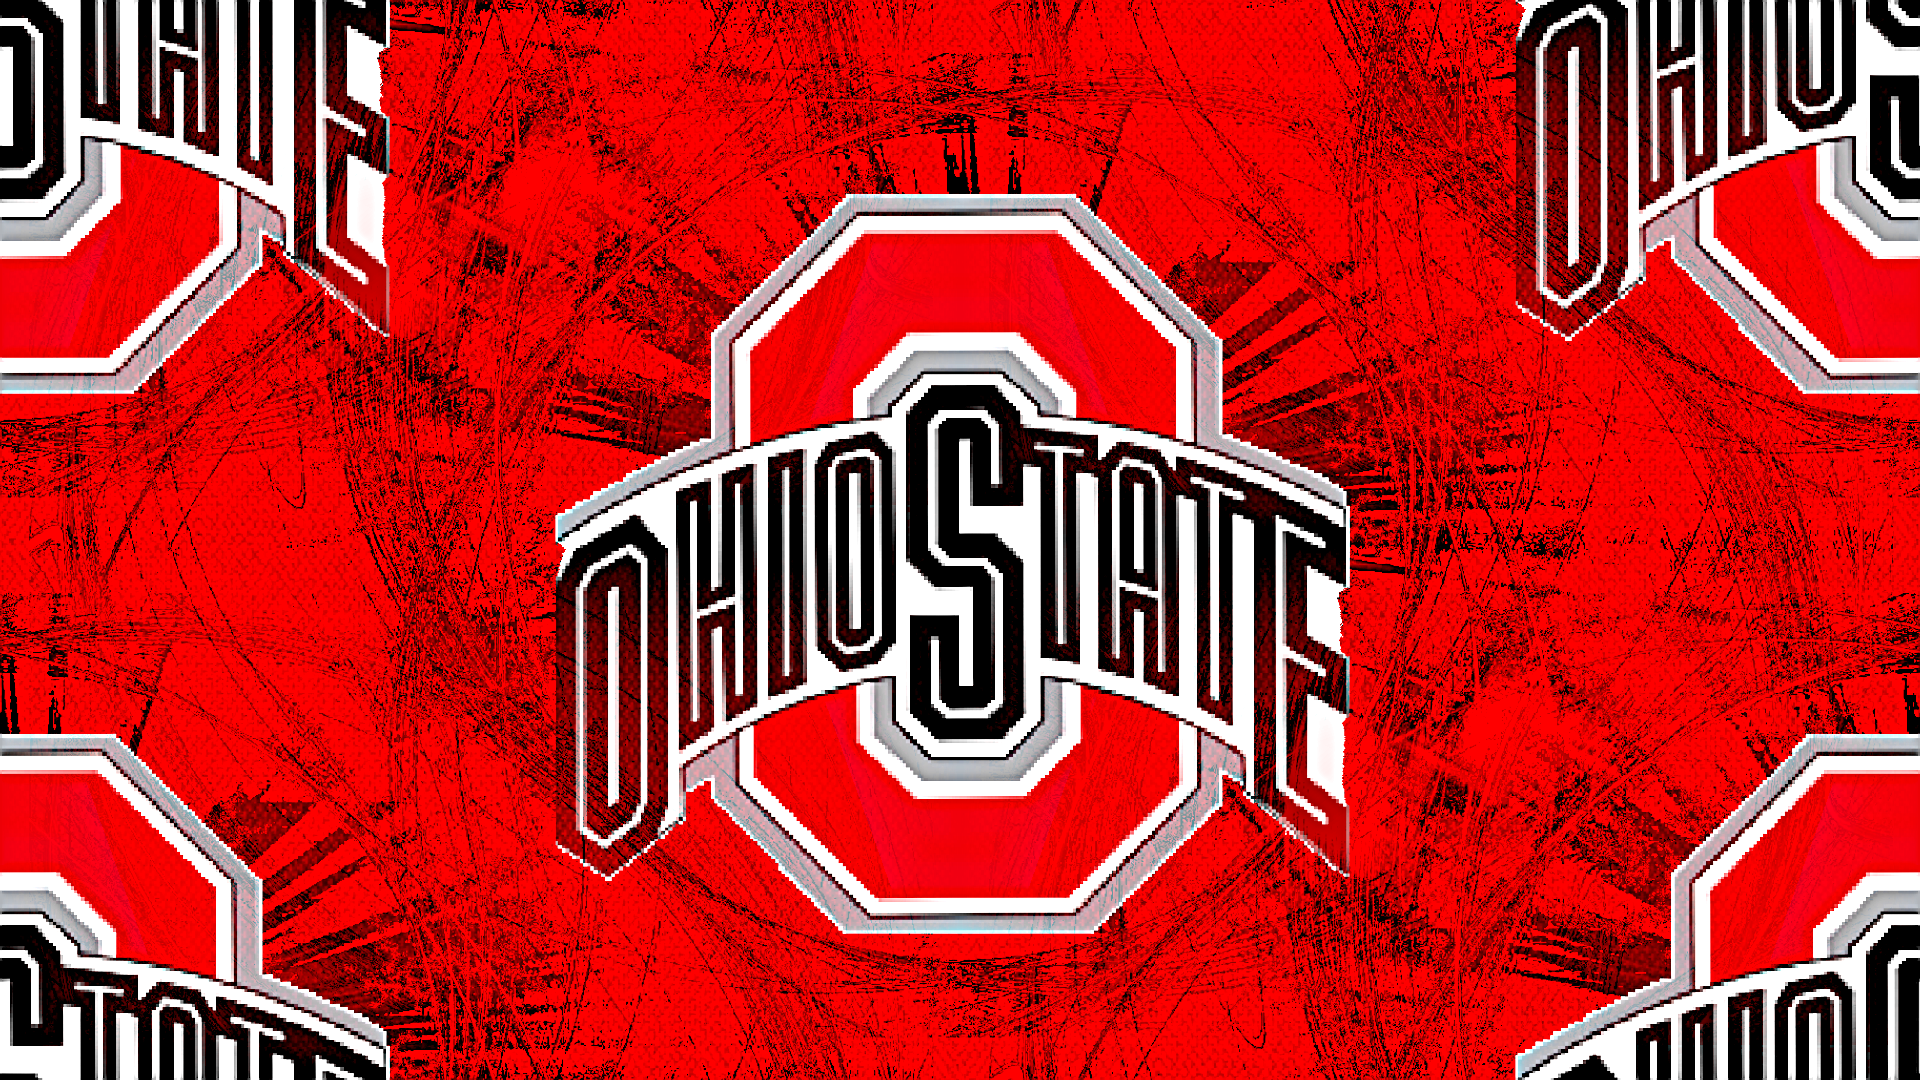 OHIO-STATE-RED-BLOCK-O-ohio-state-football-28349006-1920-1080.png